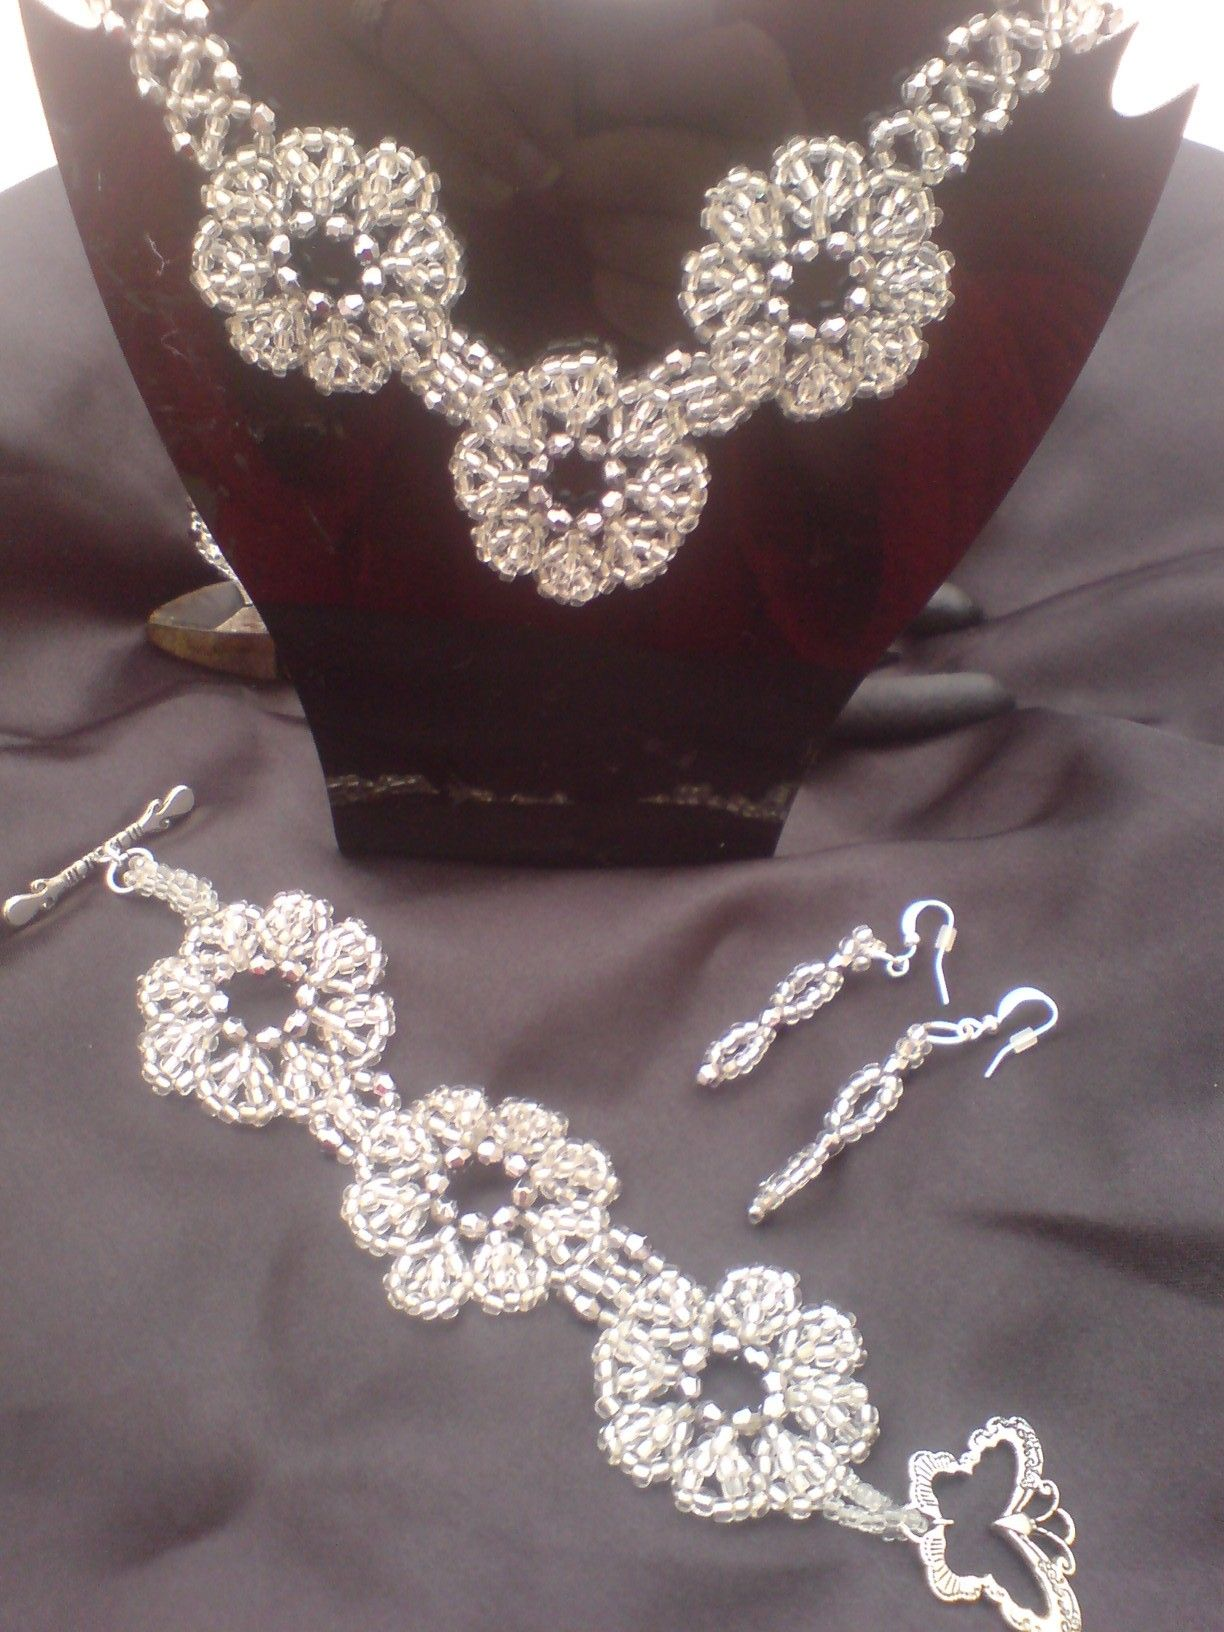 Woven Seed Bead Flower Necklace And Bracelet Set Flower